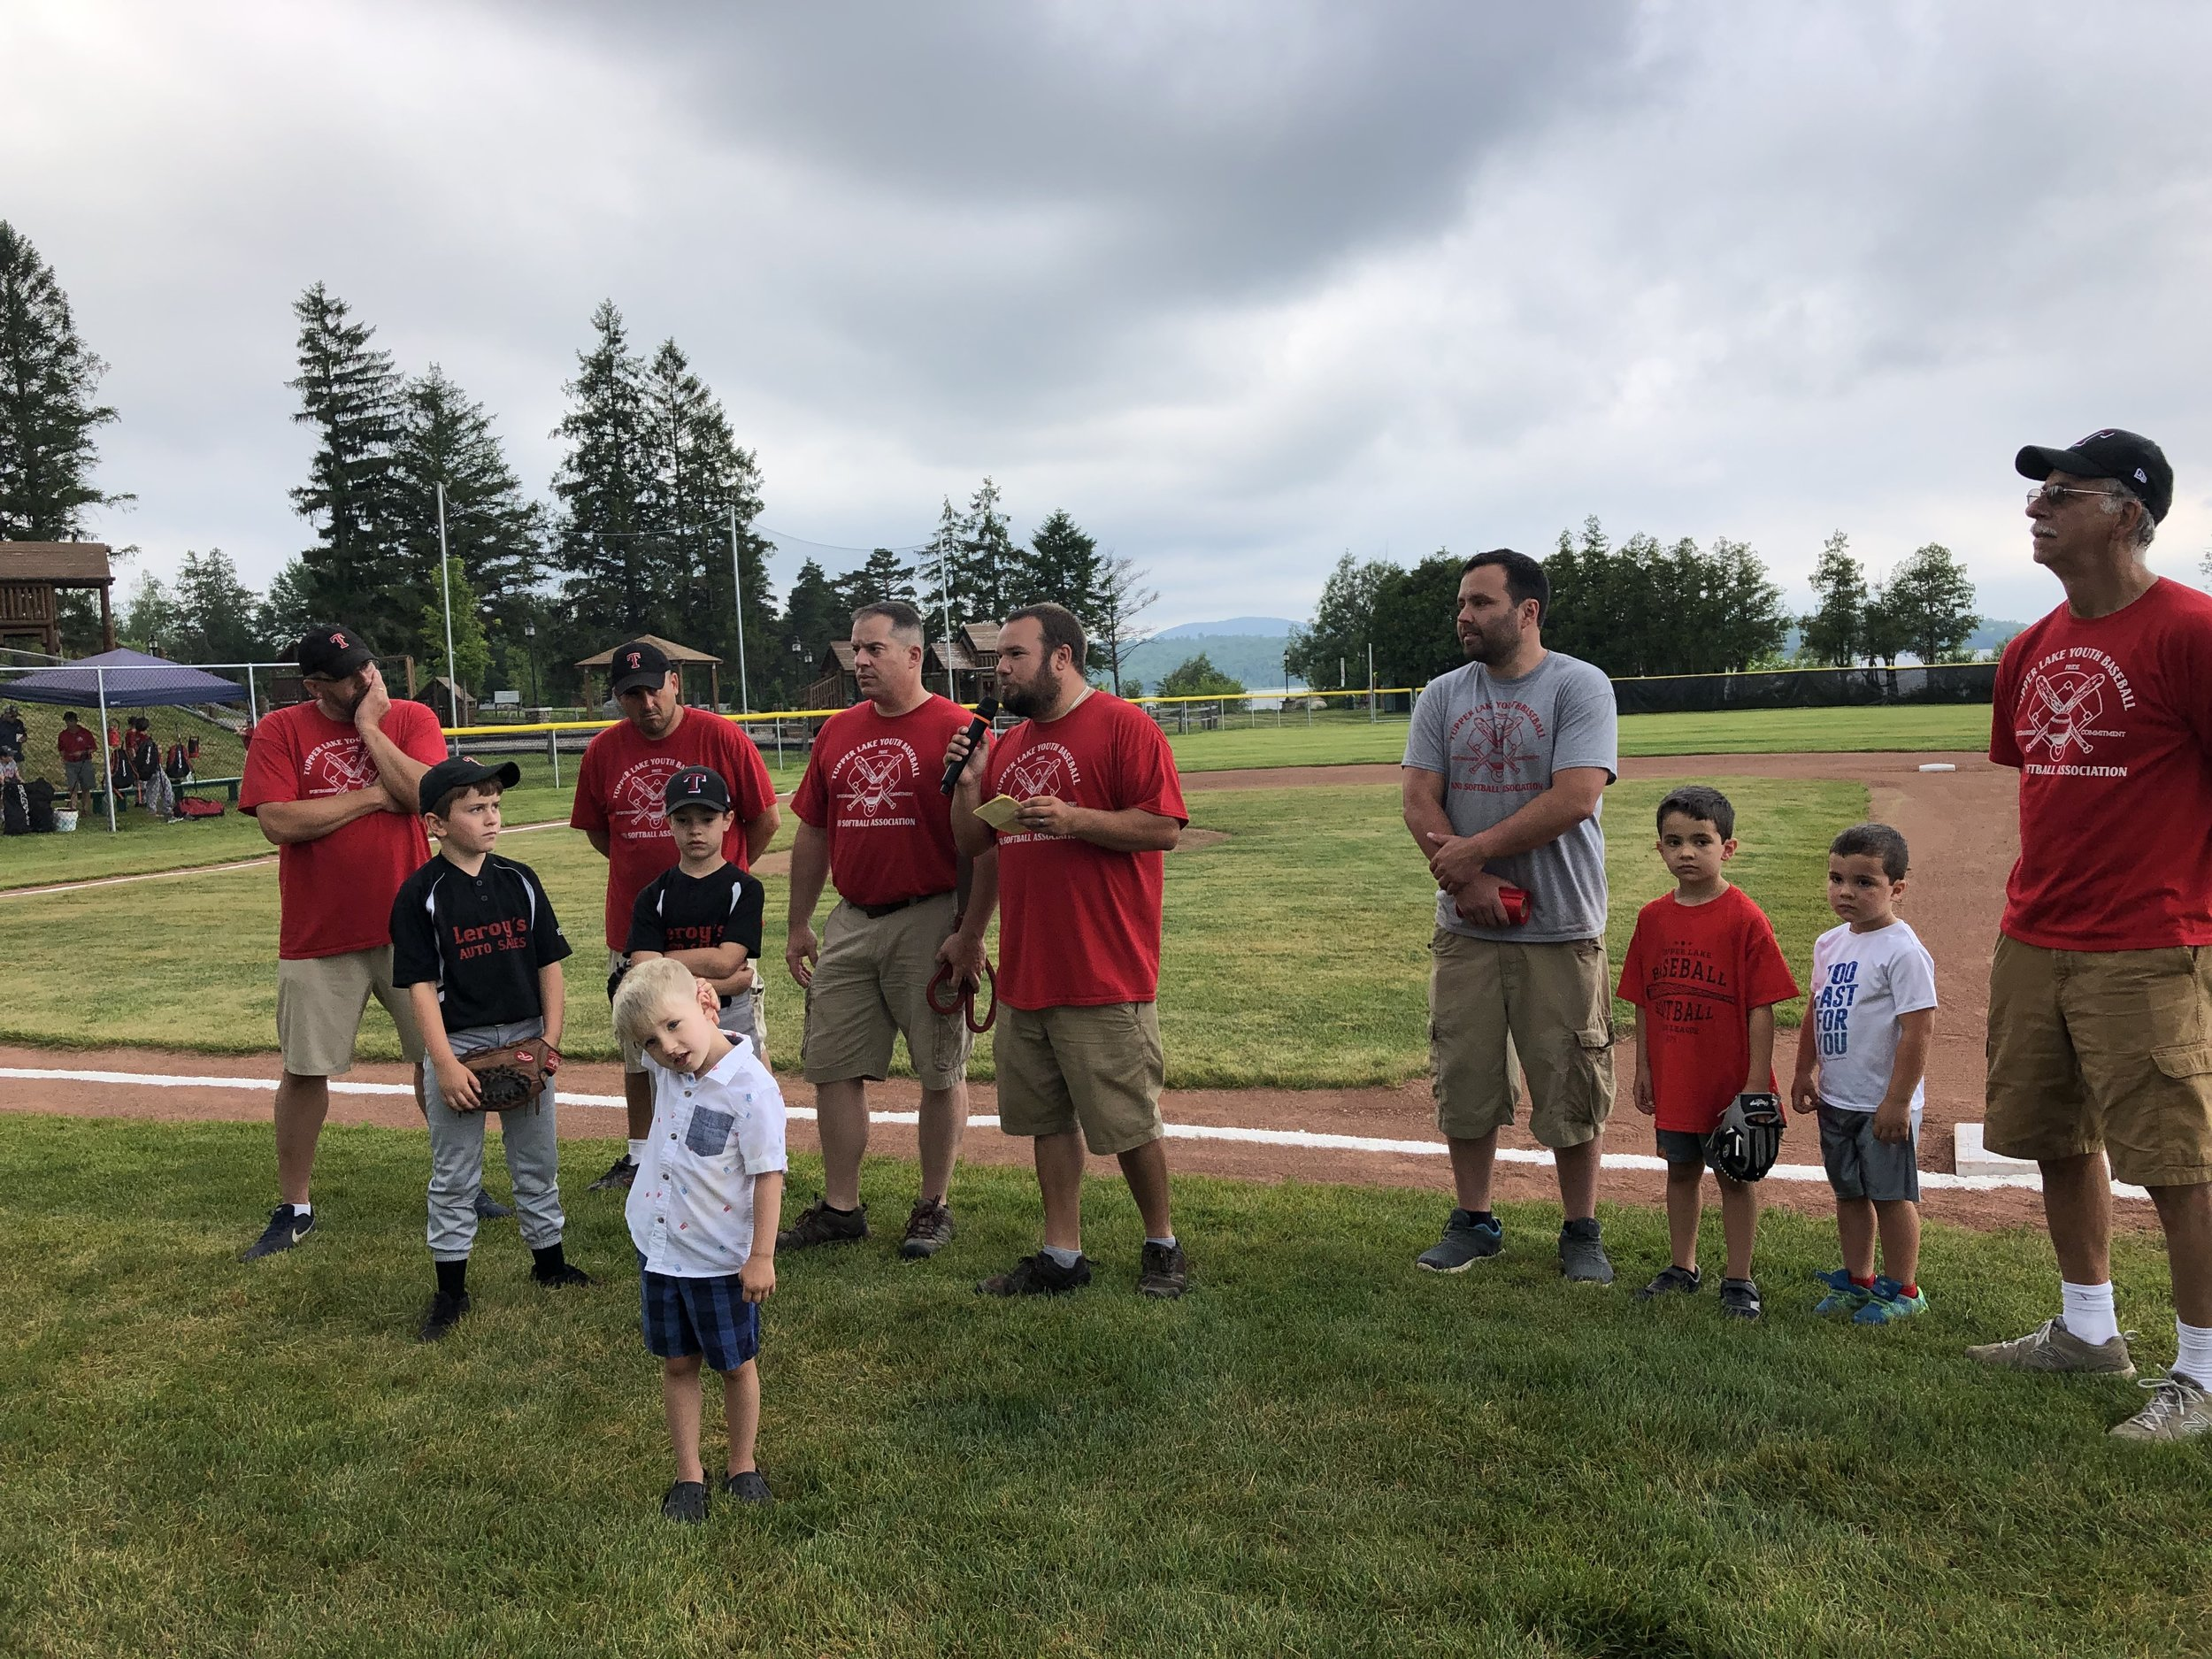 Tupper Lake Youth Softball and Baseball Association president Dan Brown (at center), with his directors and their children, had high praise for all those who helped and all those who contributed to the creation of the new $100,000 plus Little League-sized field in the municipal park.